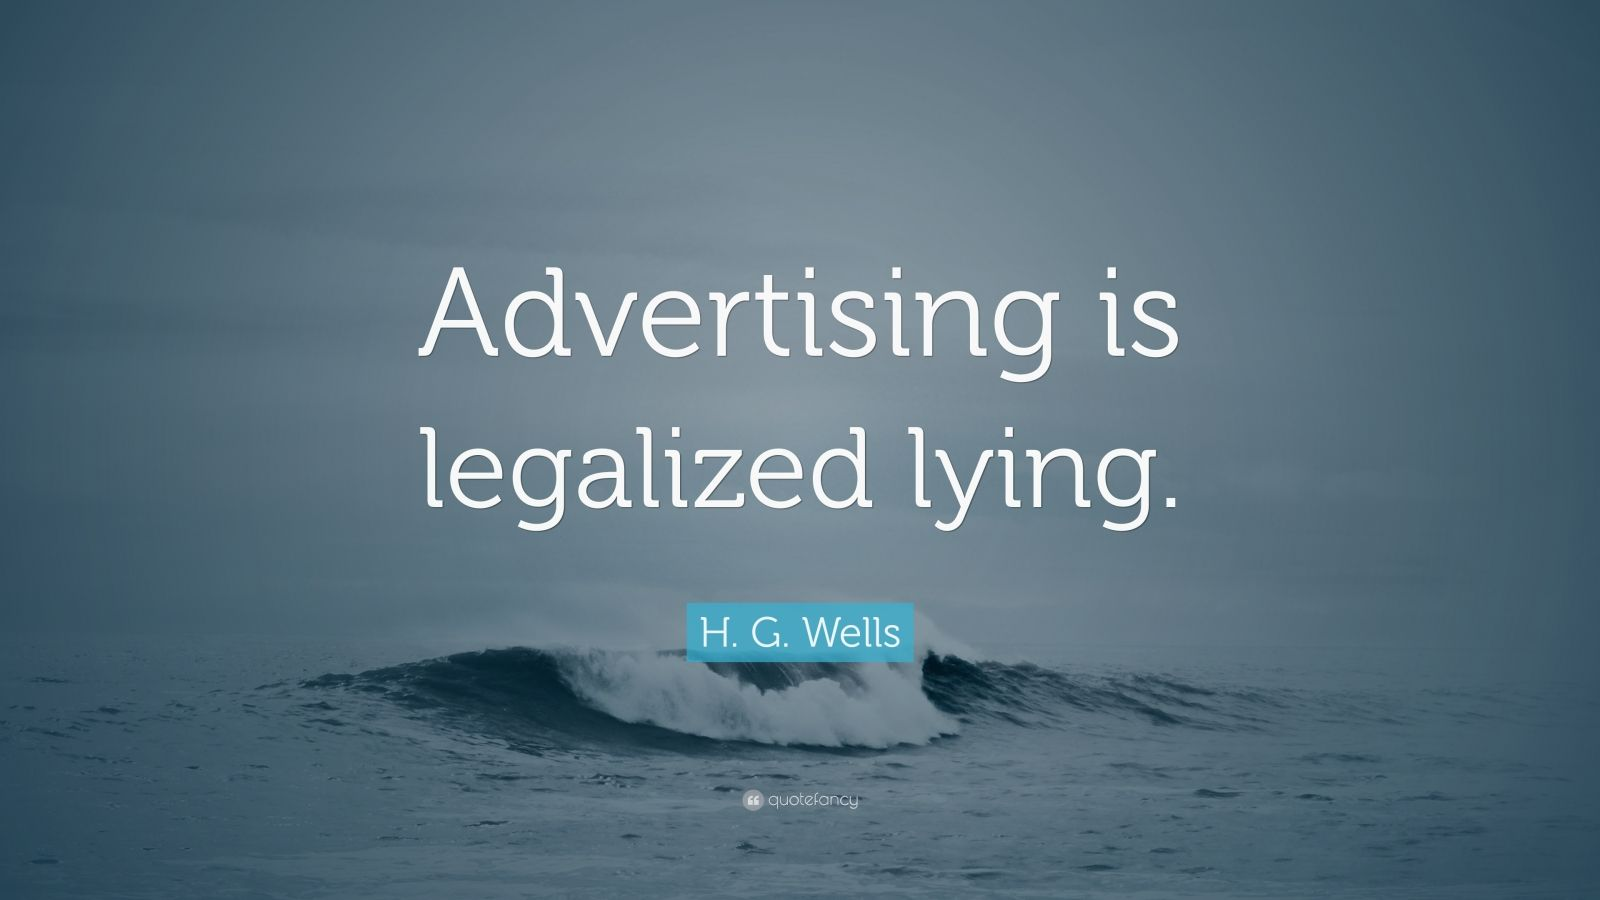 Advertising Is a Legalised Form of Lying Essay